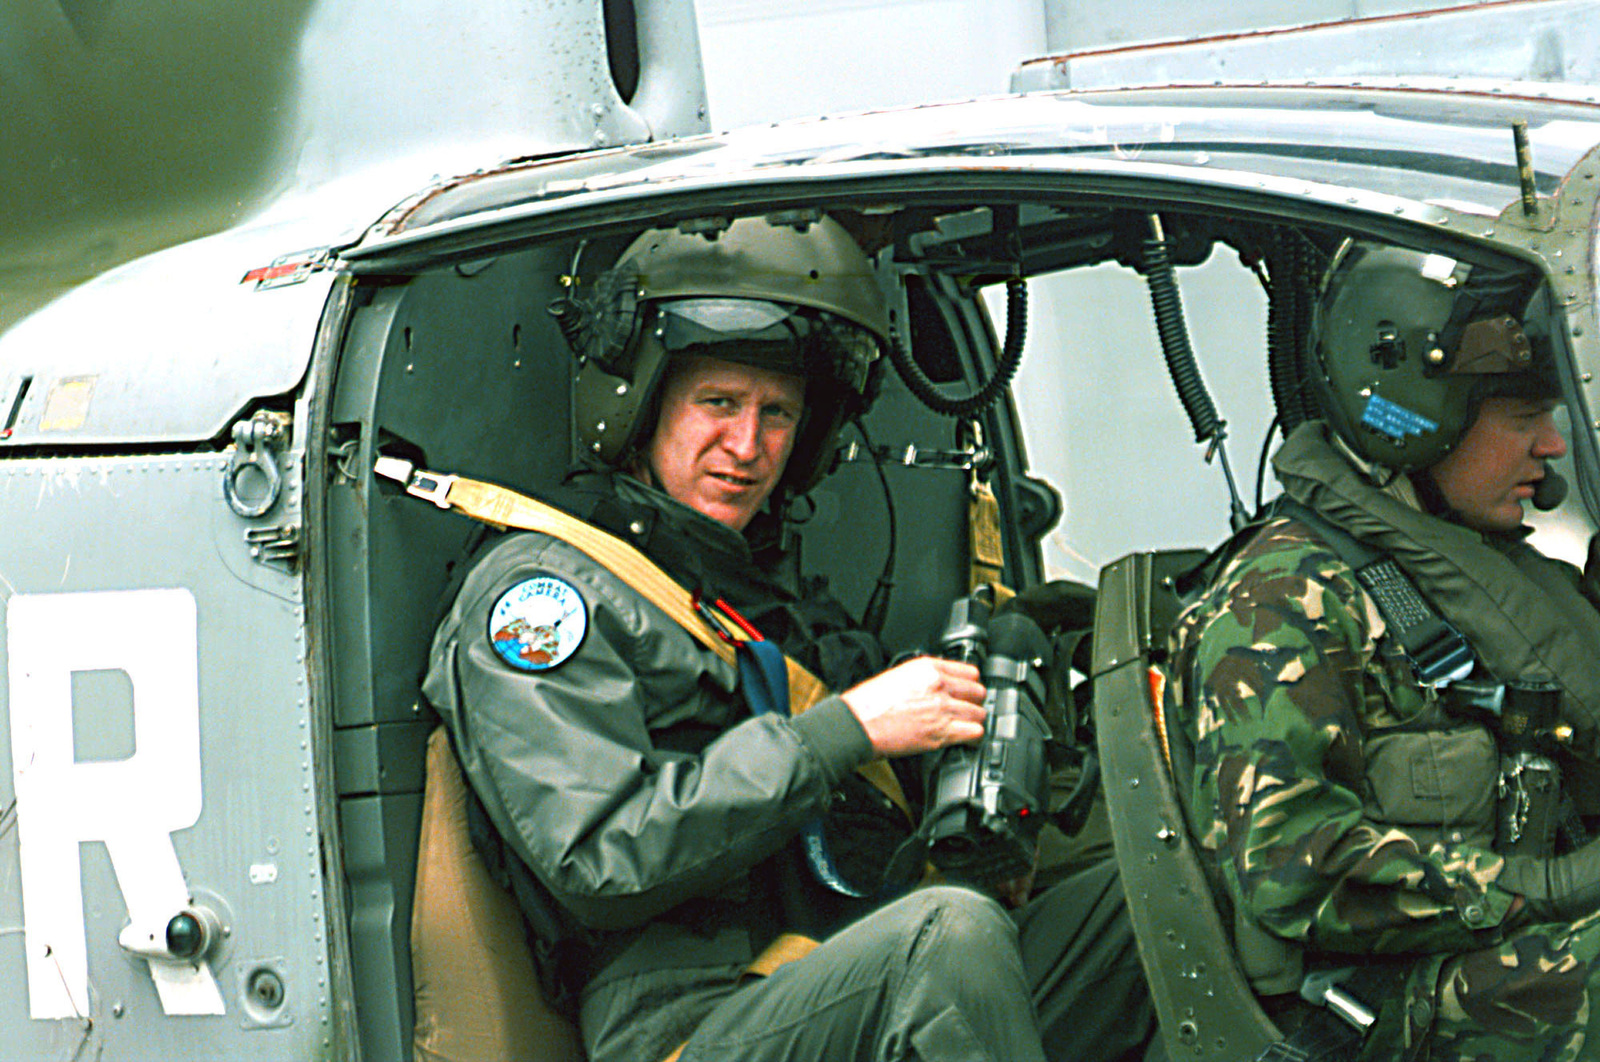 TSGT Jeffrey Chrisholm a videographer from the 1ST Combat Camera Squadron, Charleston Air Force Base, South Carolina, prepares for an aerial reconnaissance mission seated in a British Army SA-341 Gazelle helicopter